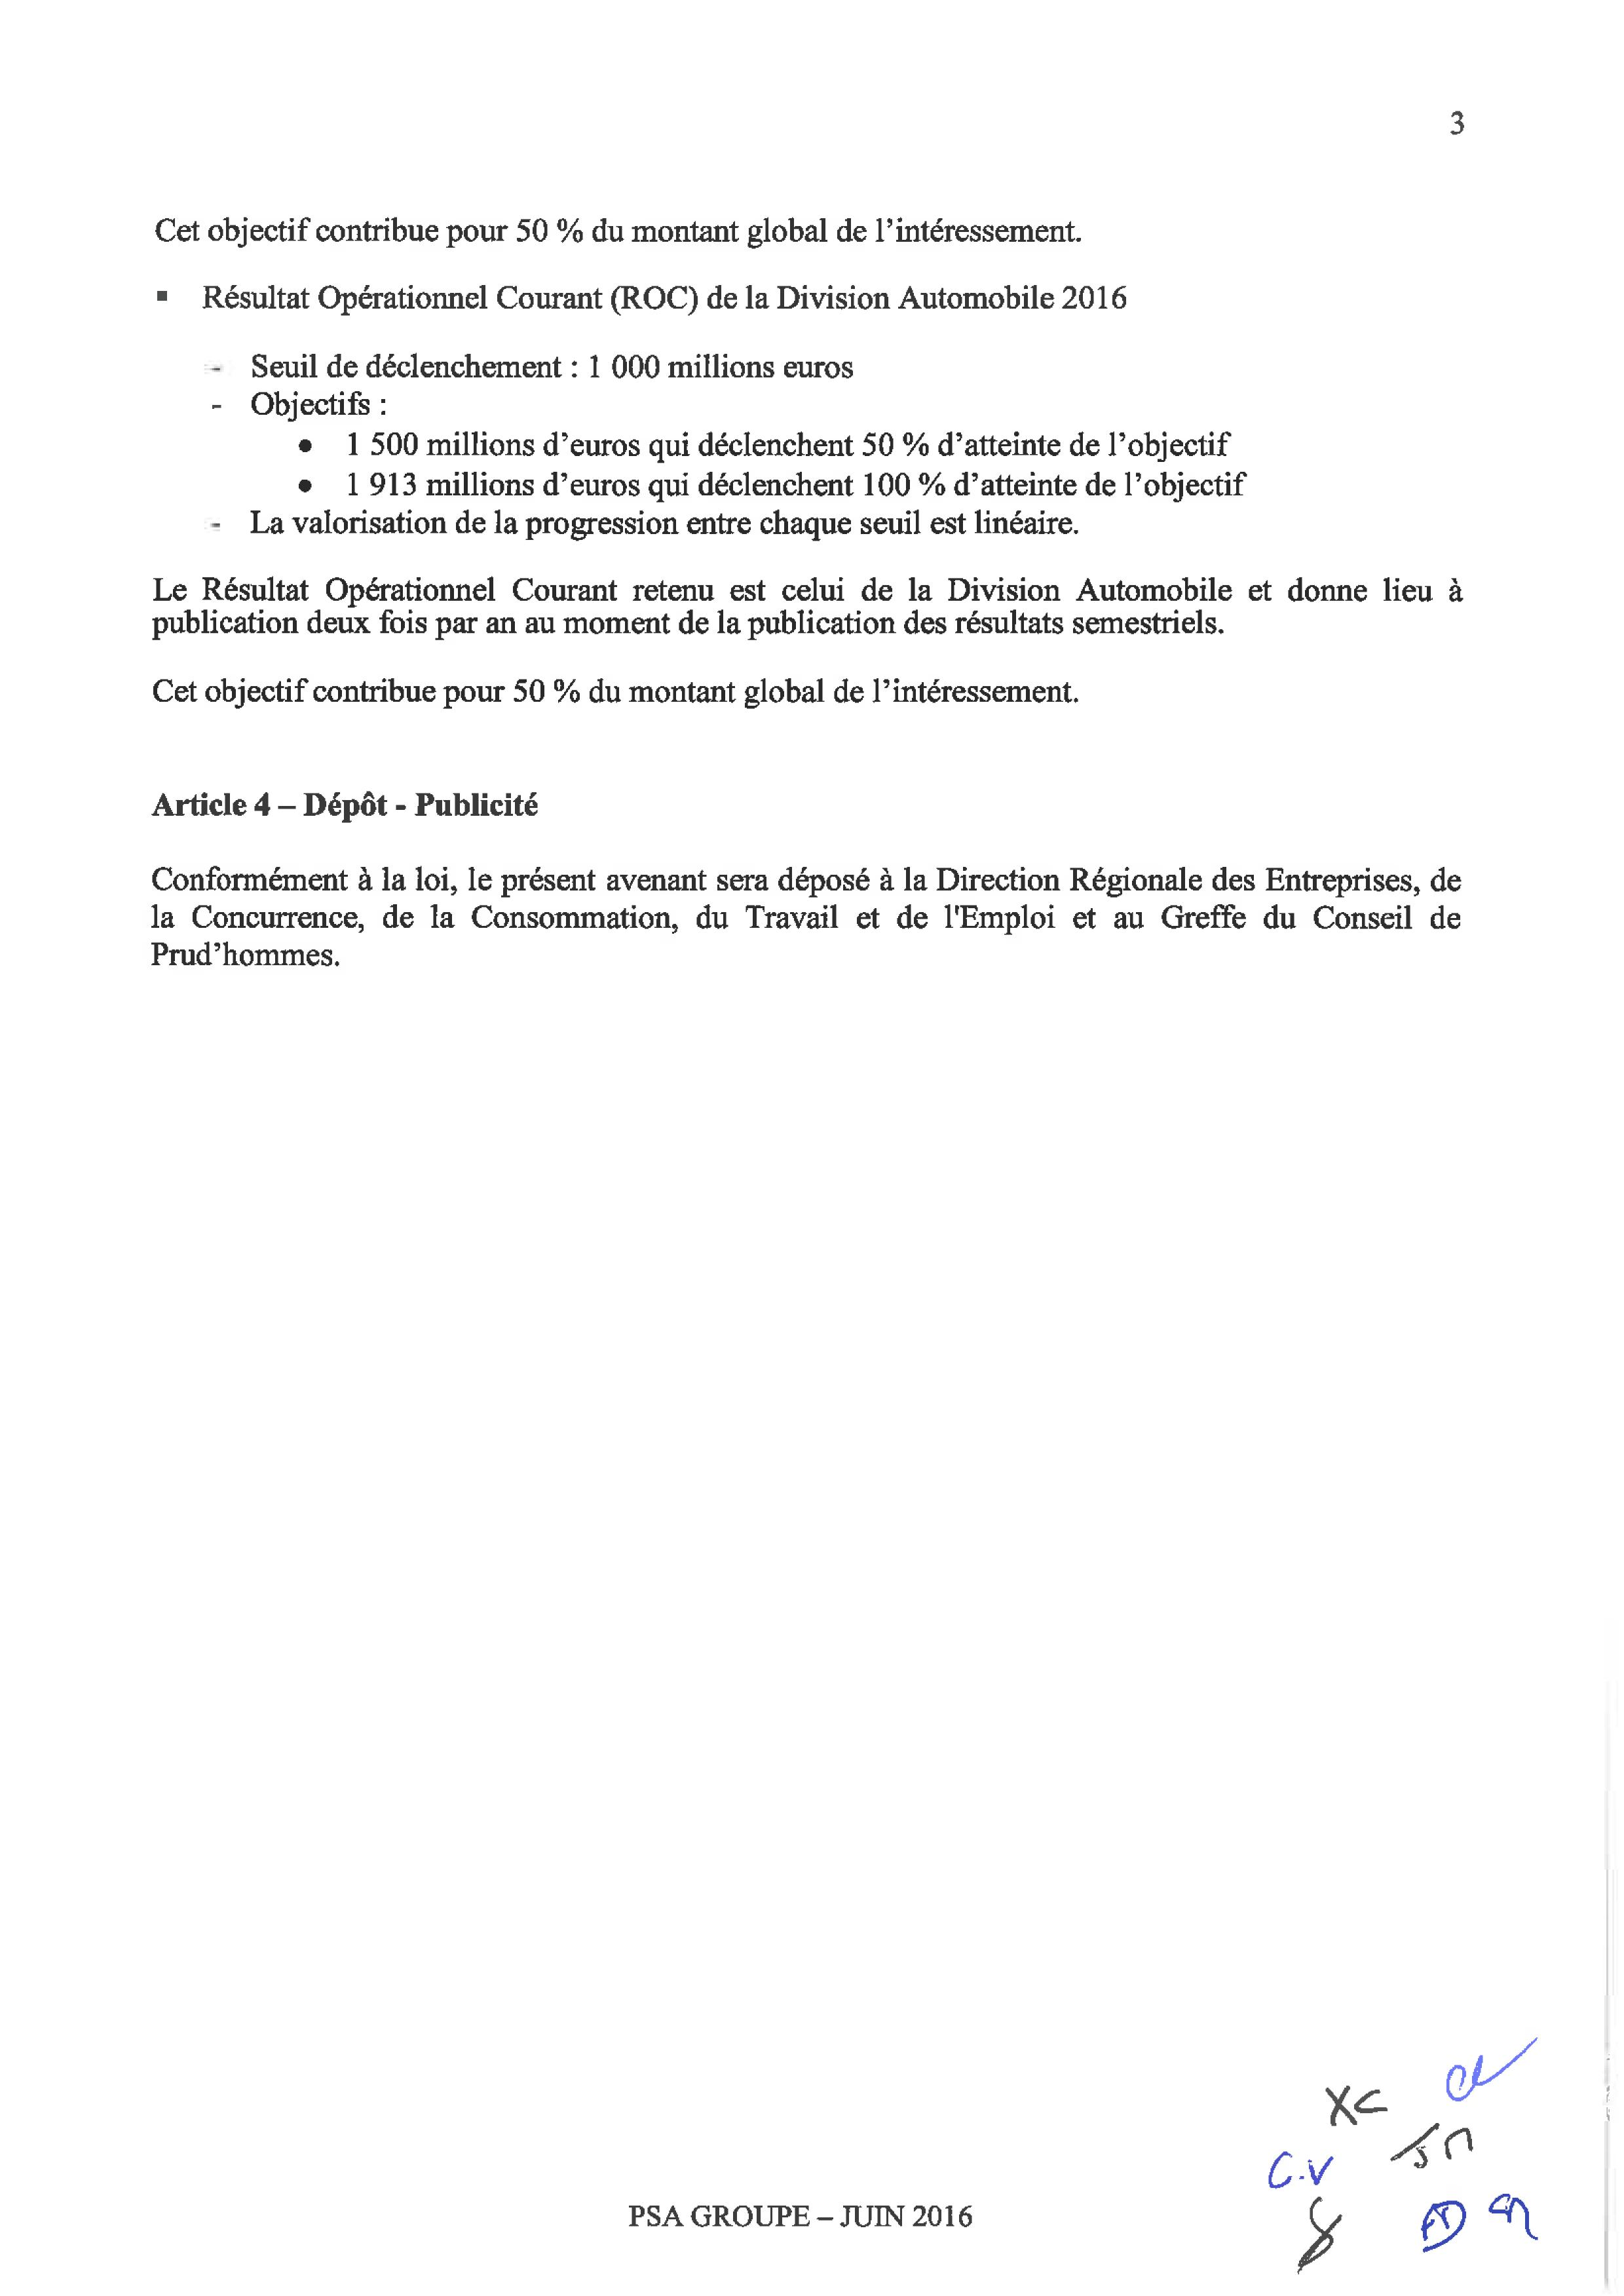 Avenant 2016 à l'accord de participation et d'interessement _03